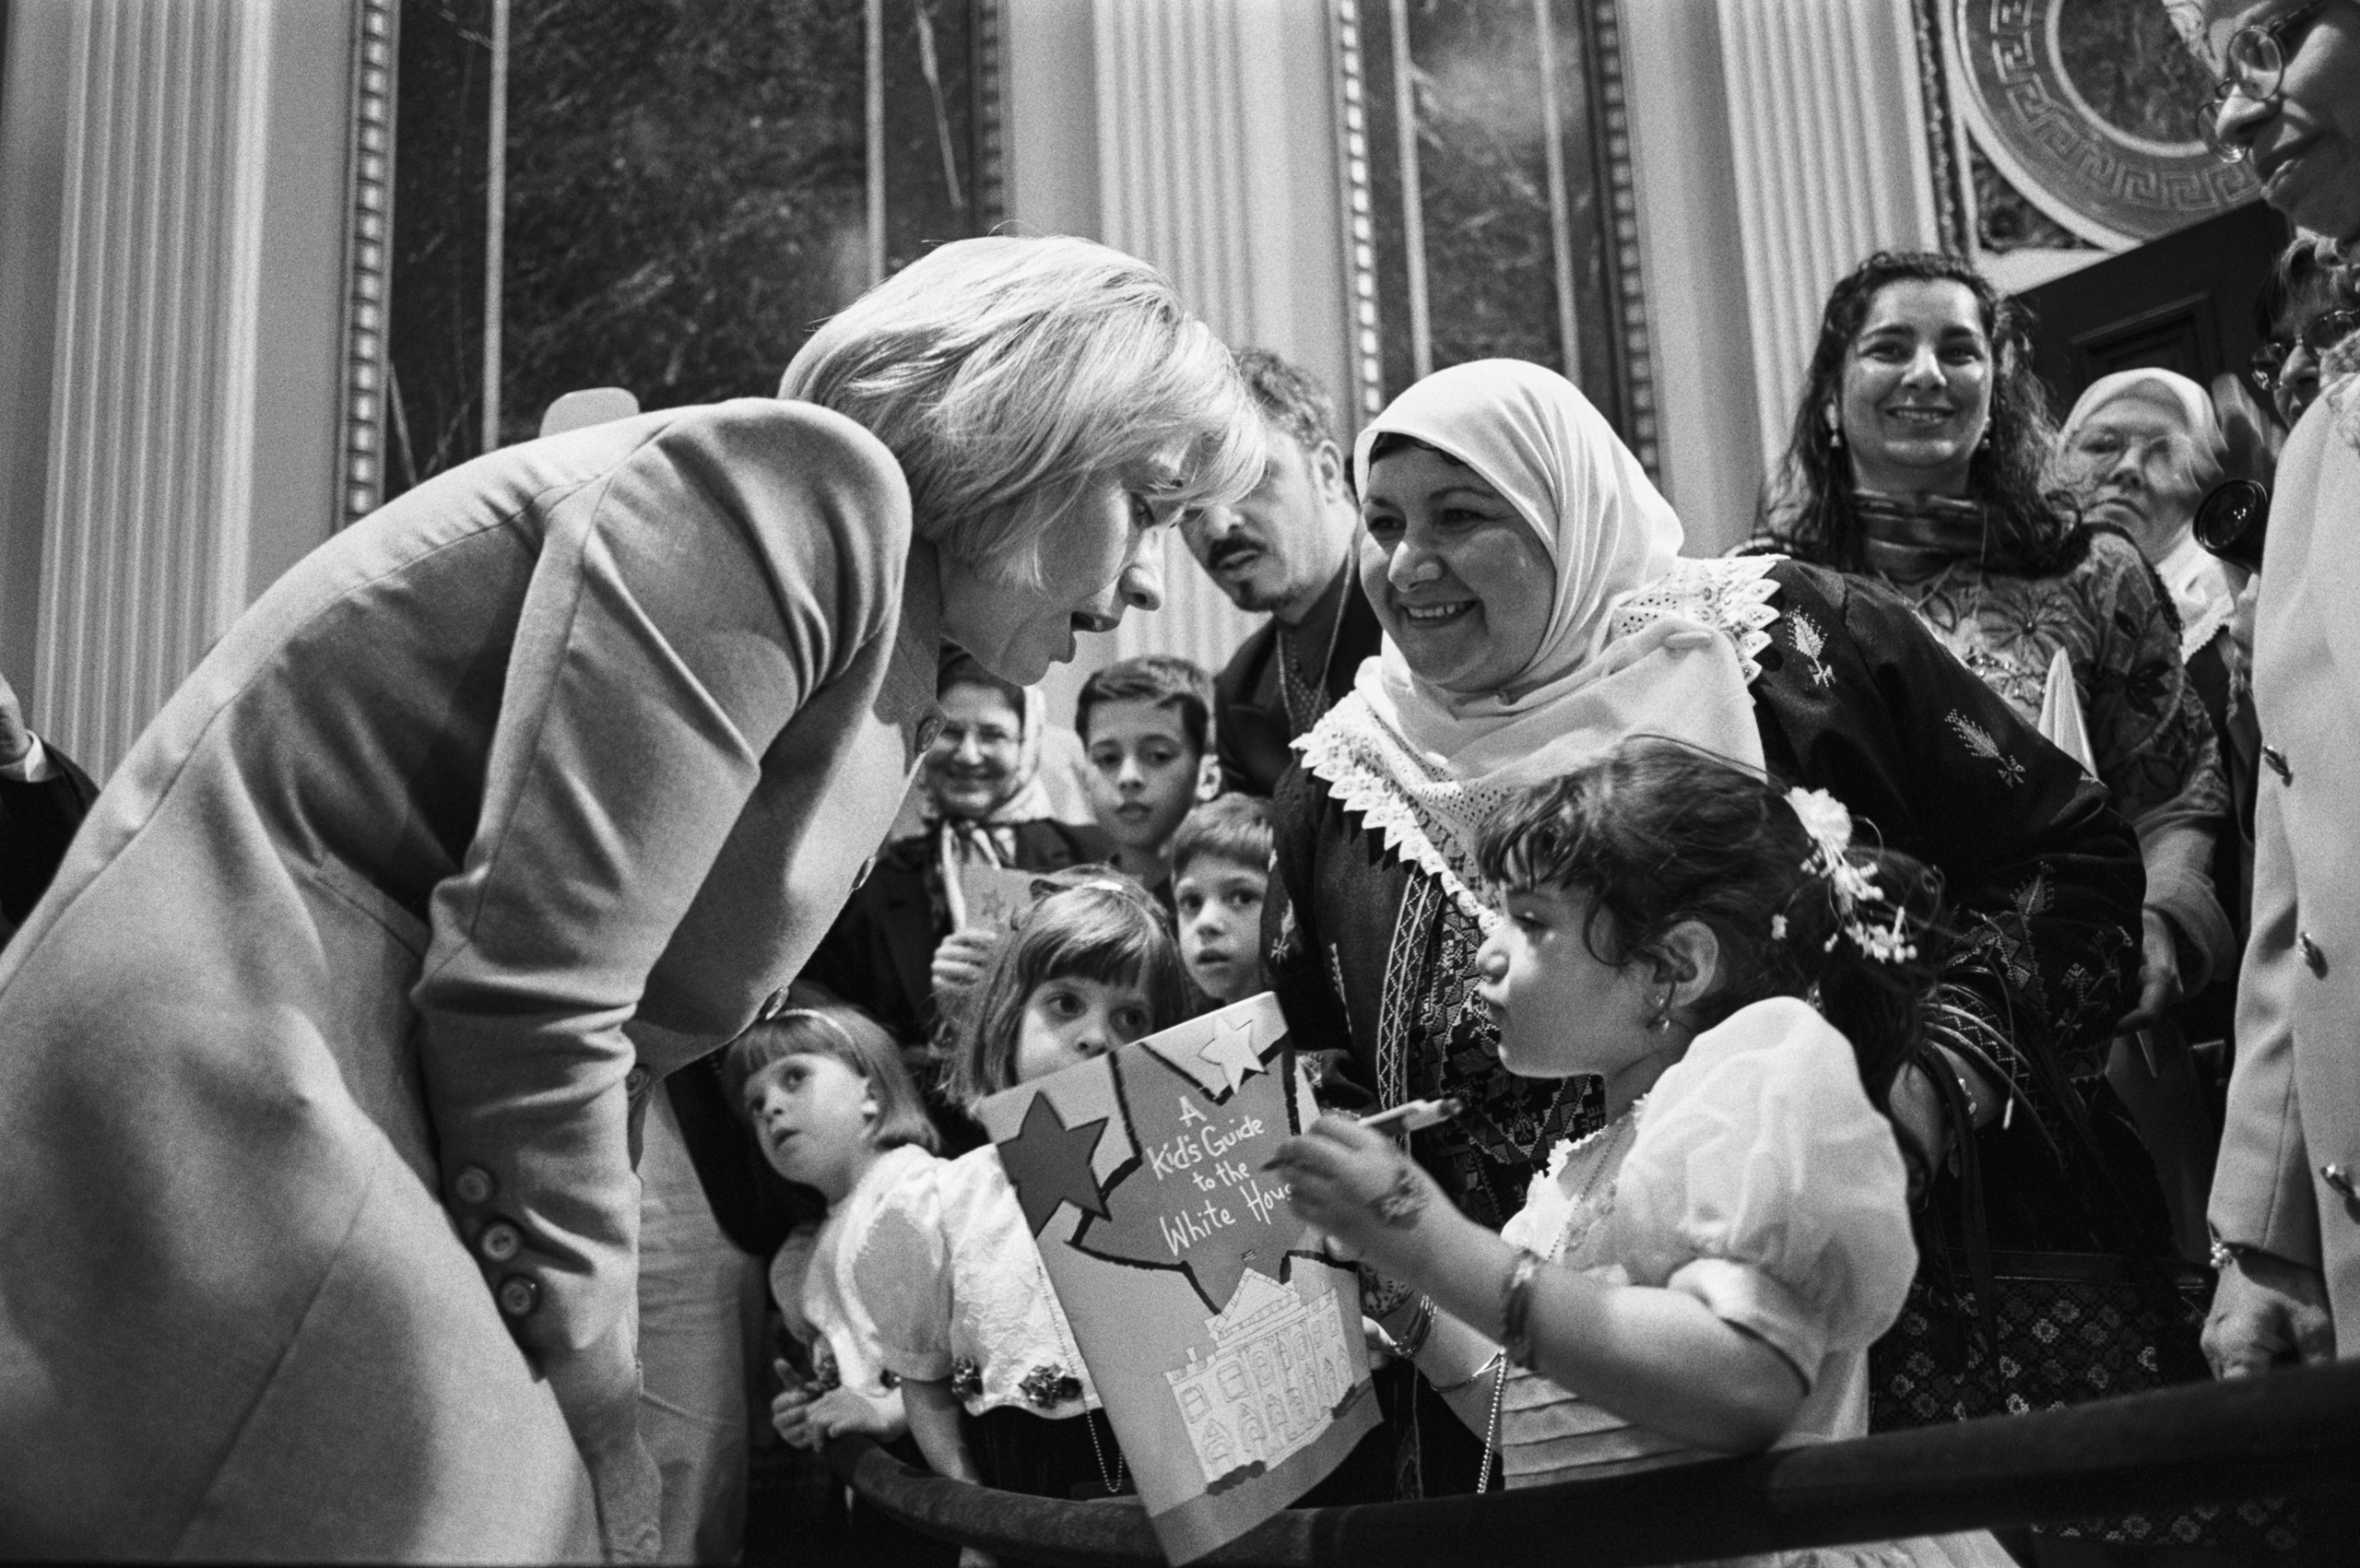 Hillary Clinton meets with Muslim Americans in the White House Indian Treaty Room to commemorate the end of Ramadan, on Jan. 29, 1998.